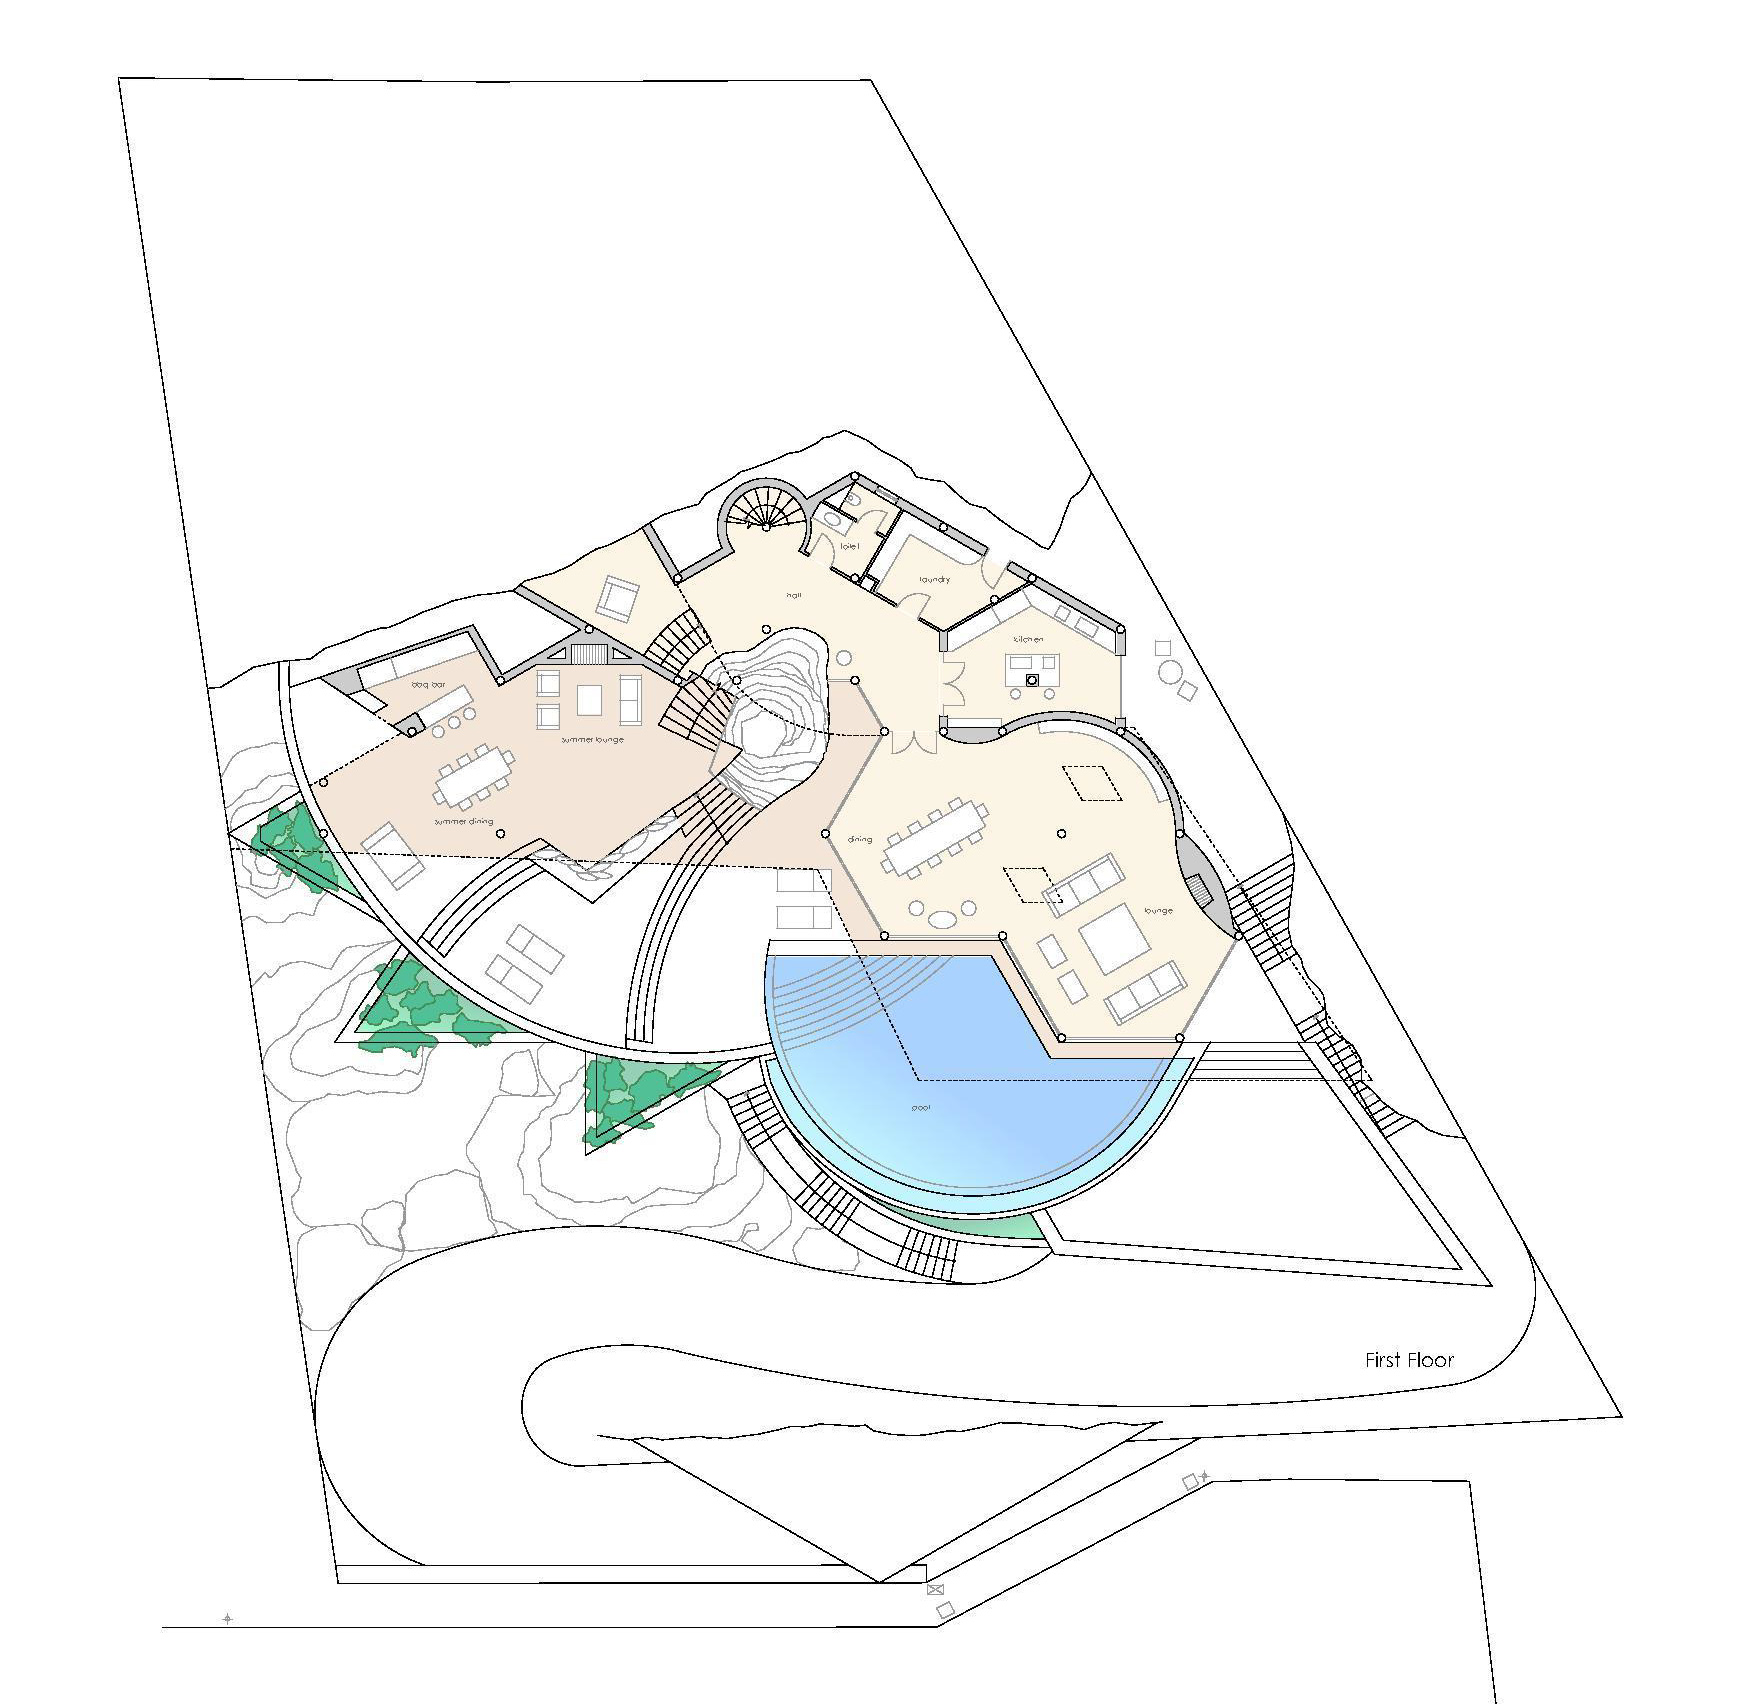 First Floor Plan - Rockstar Villa - Cala Marmacen, Port d'Andratx, Mallorca, Balearic Islands, Spain